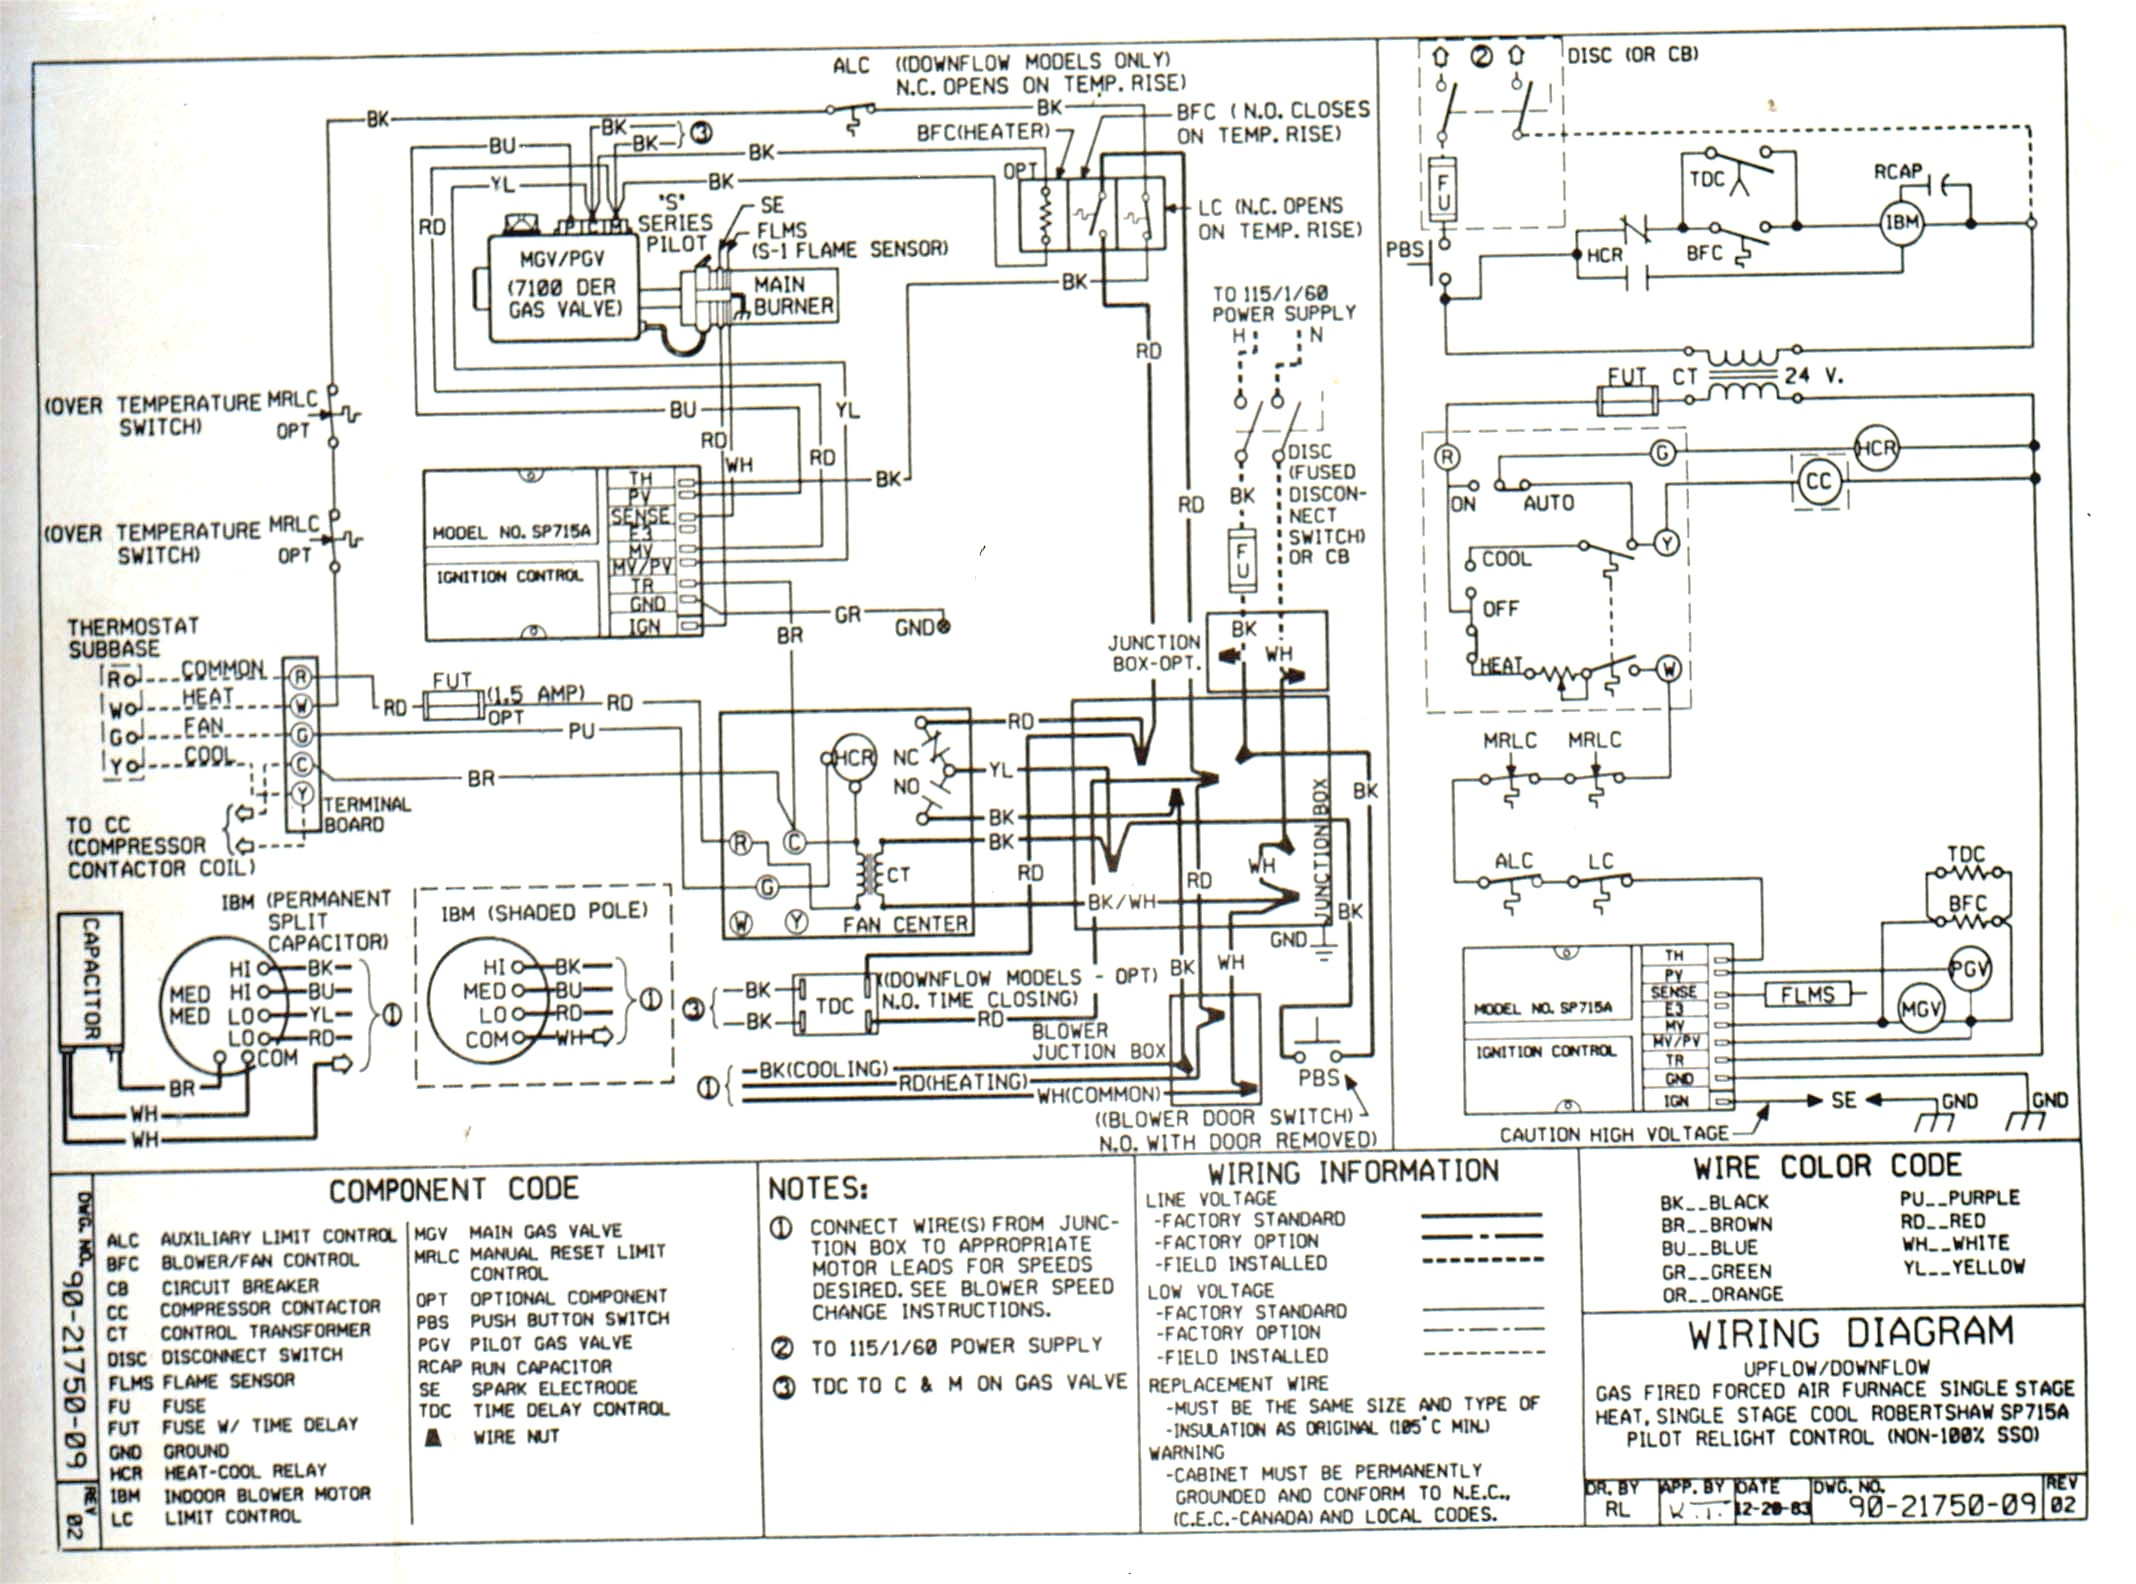 rheem heat pump thermostat wiring diagram Collection-Wiring Diagram for Hot Water Heater thermostat Fresh Heat Pump thermostat Wiring Diagram for Rheem Hot 14-b